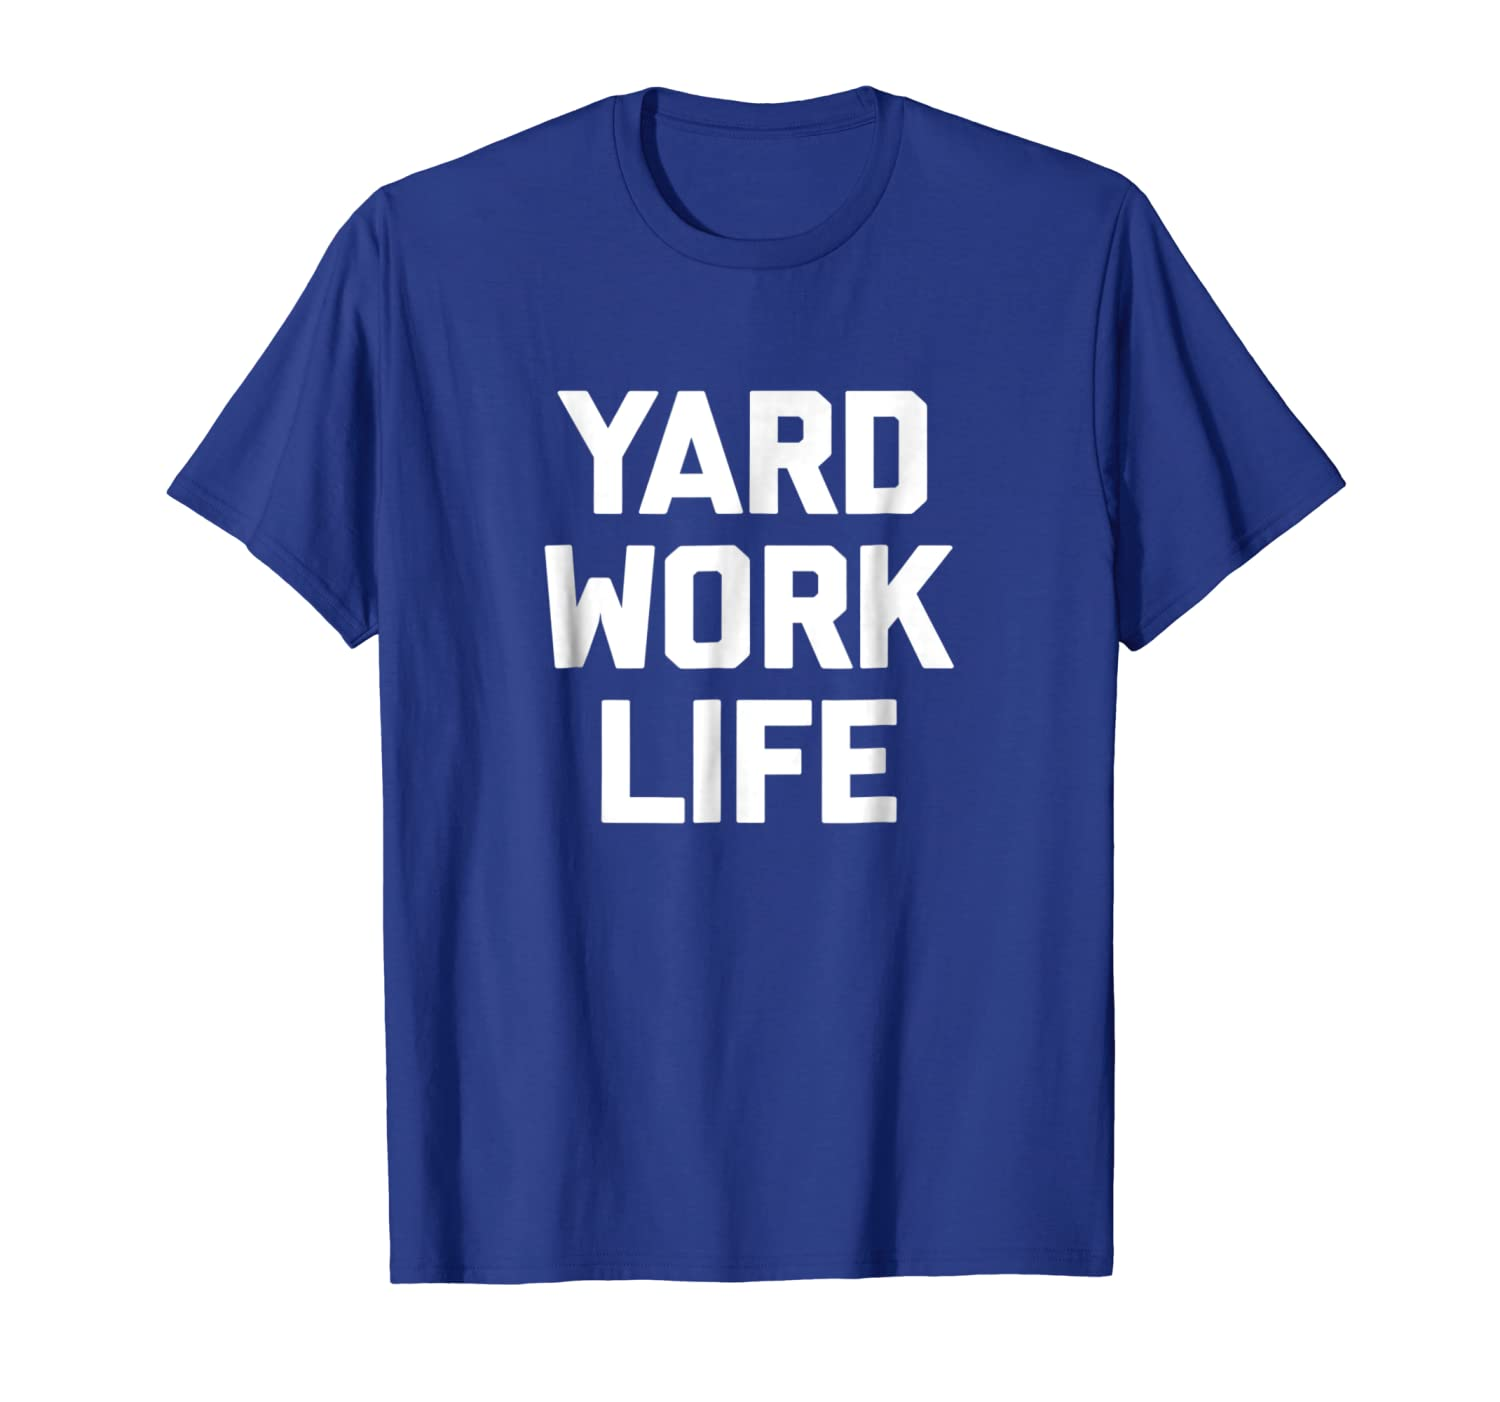 Yard Work Life T-Shirt funny saying sarcastic novelty humor-TH